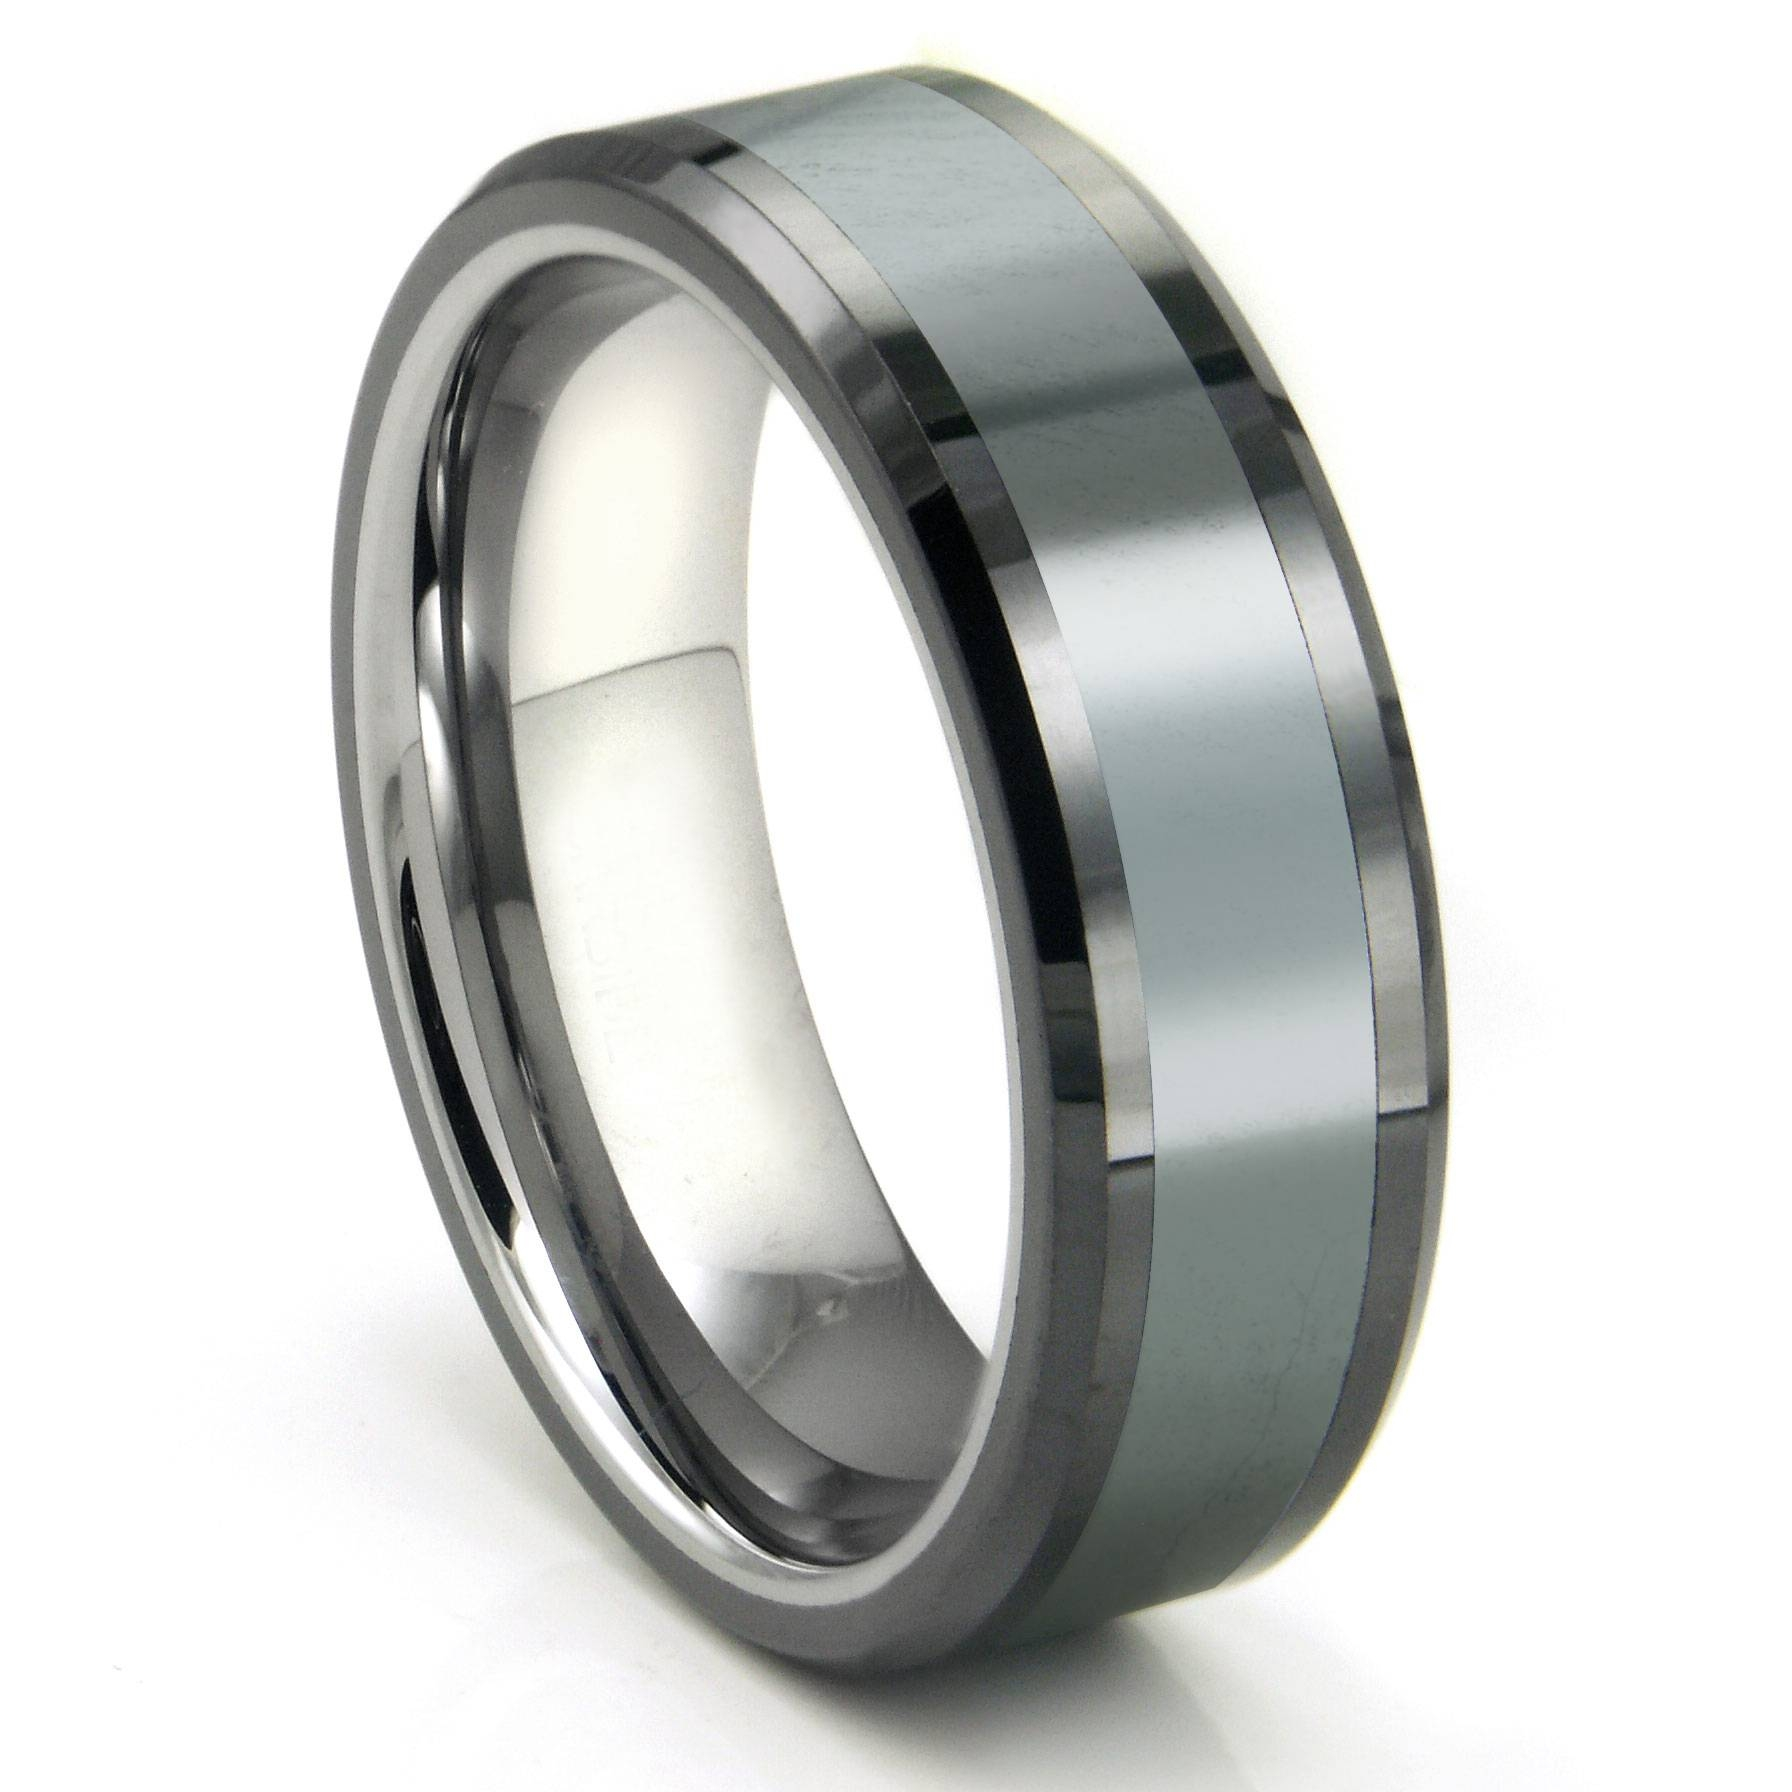 Mens Tungsten Rings & Wedding Bands – Titanium Kay Intended For Dark Metal Wedding Bands (View 13 of 15)